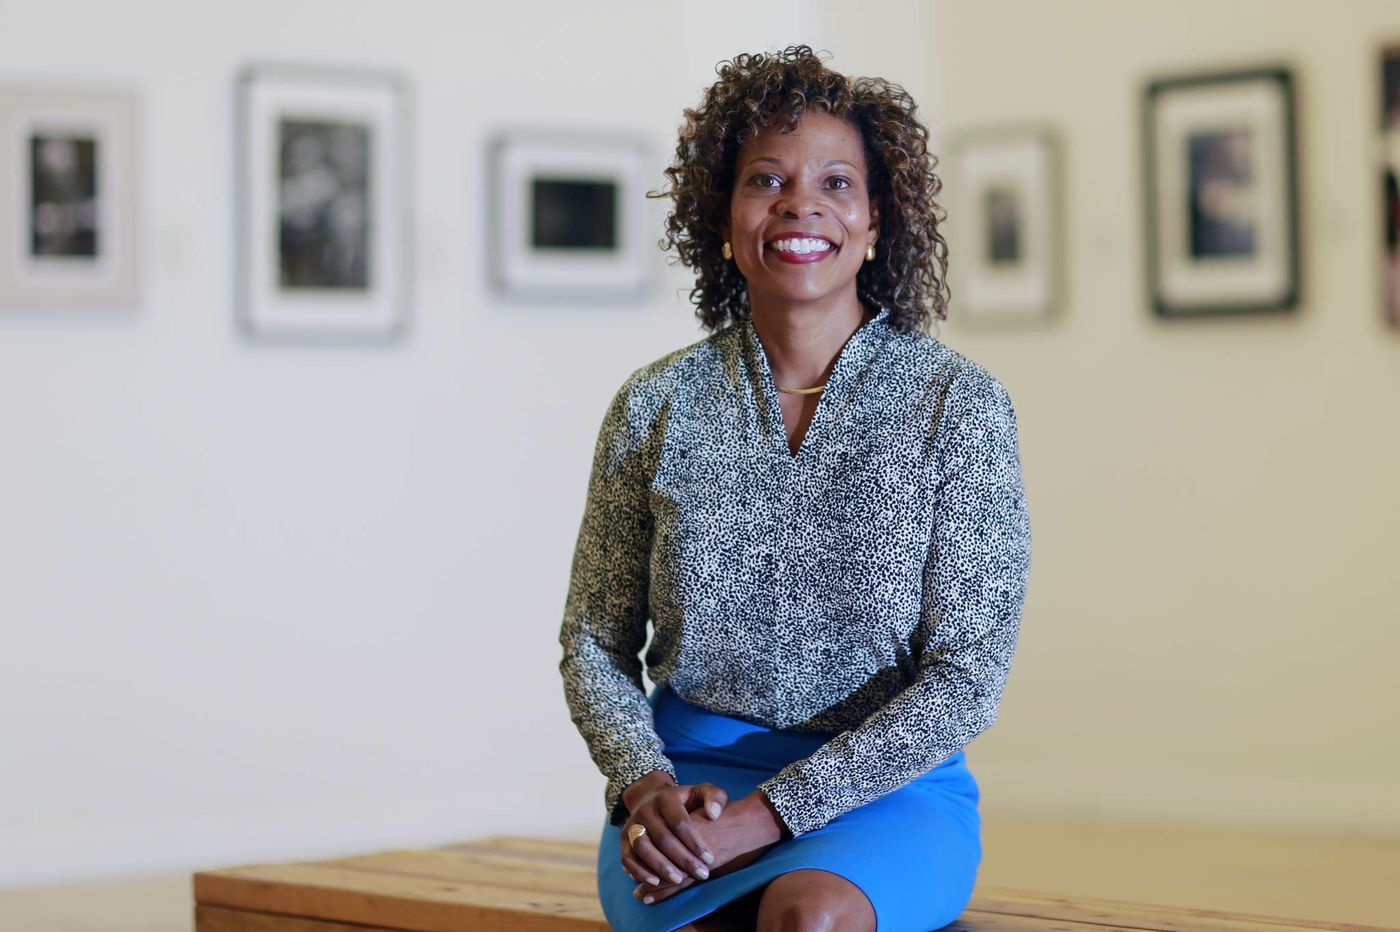 How Philly's new chief culture officer aims to bring arts back to schools